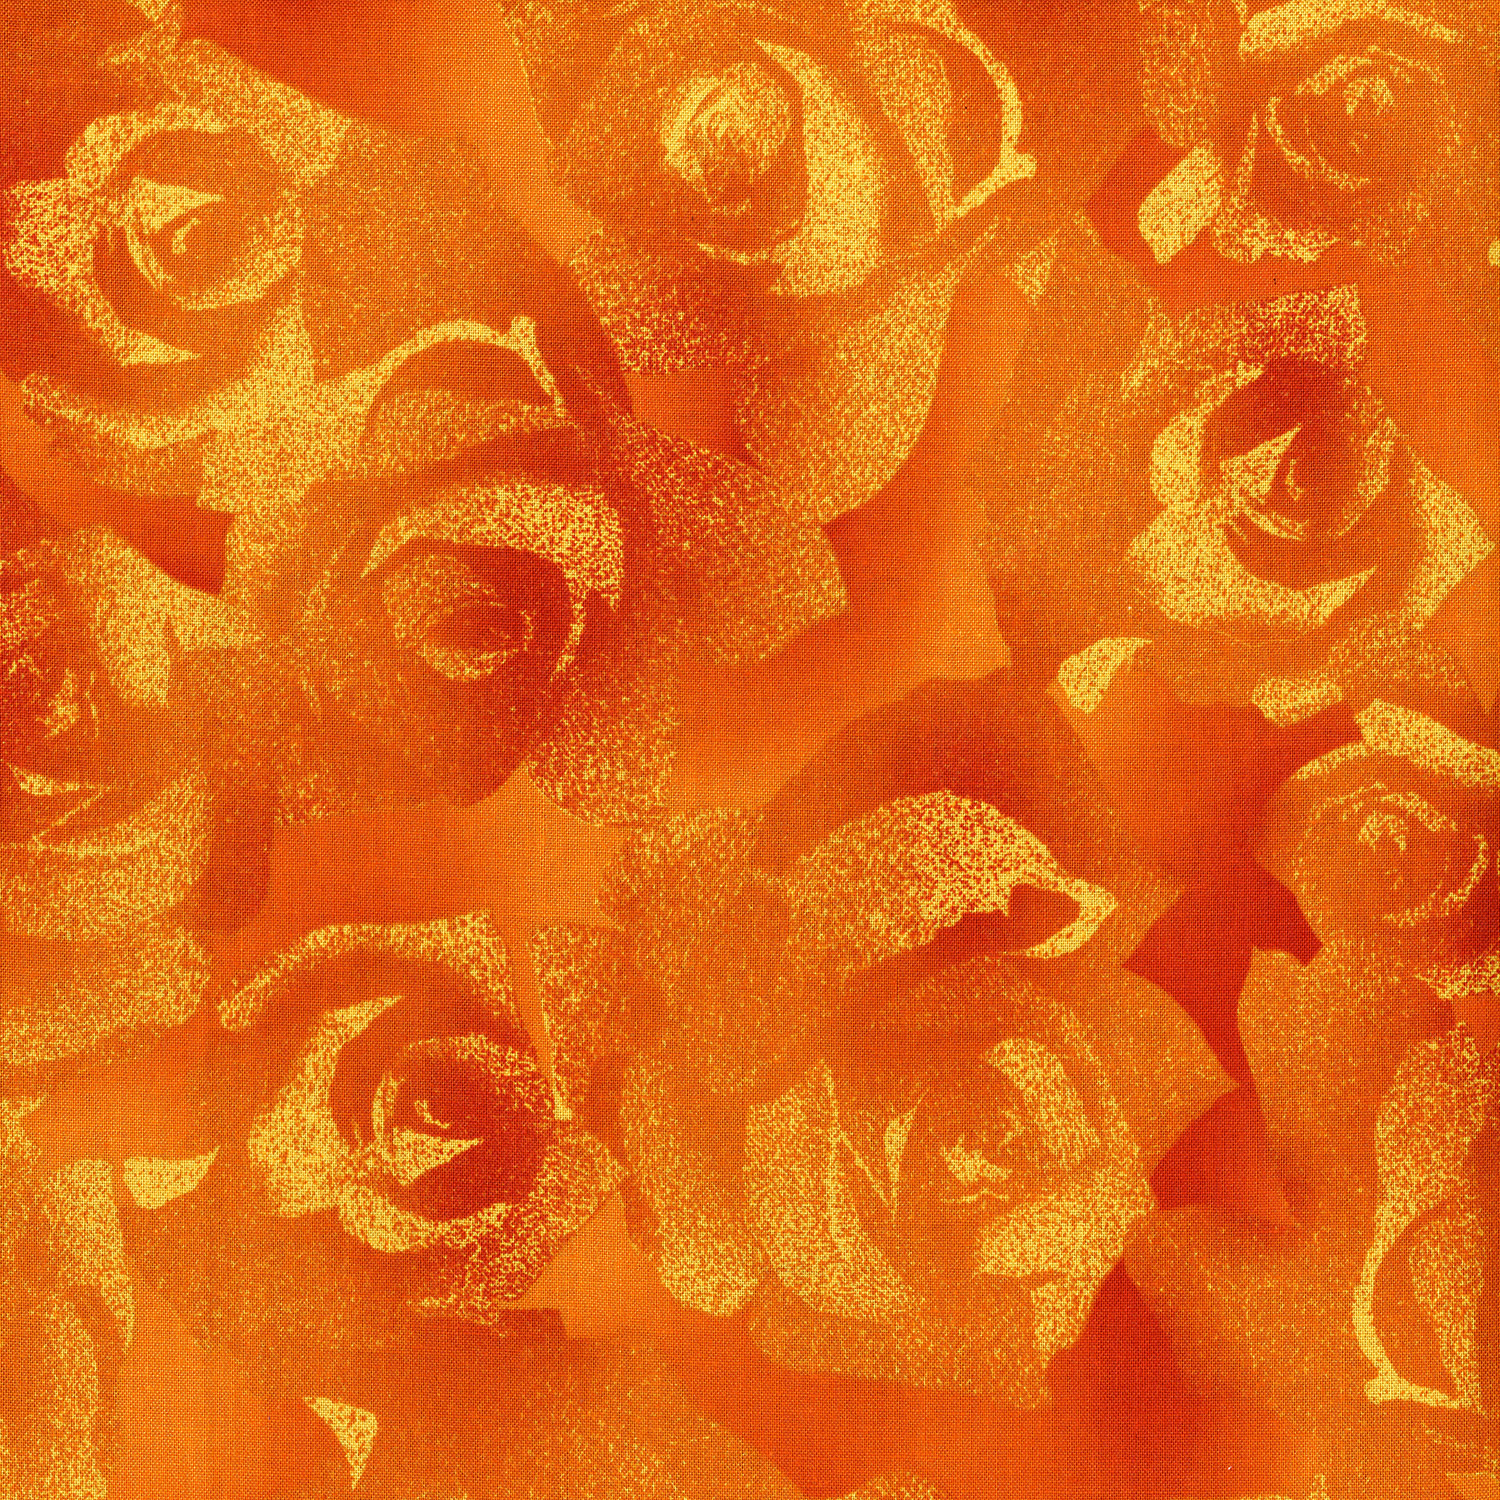 3017-002 TEXTURED ROSE-ORANGE